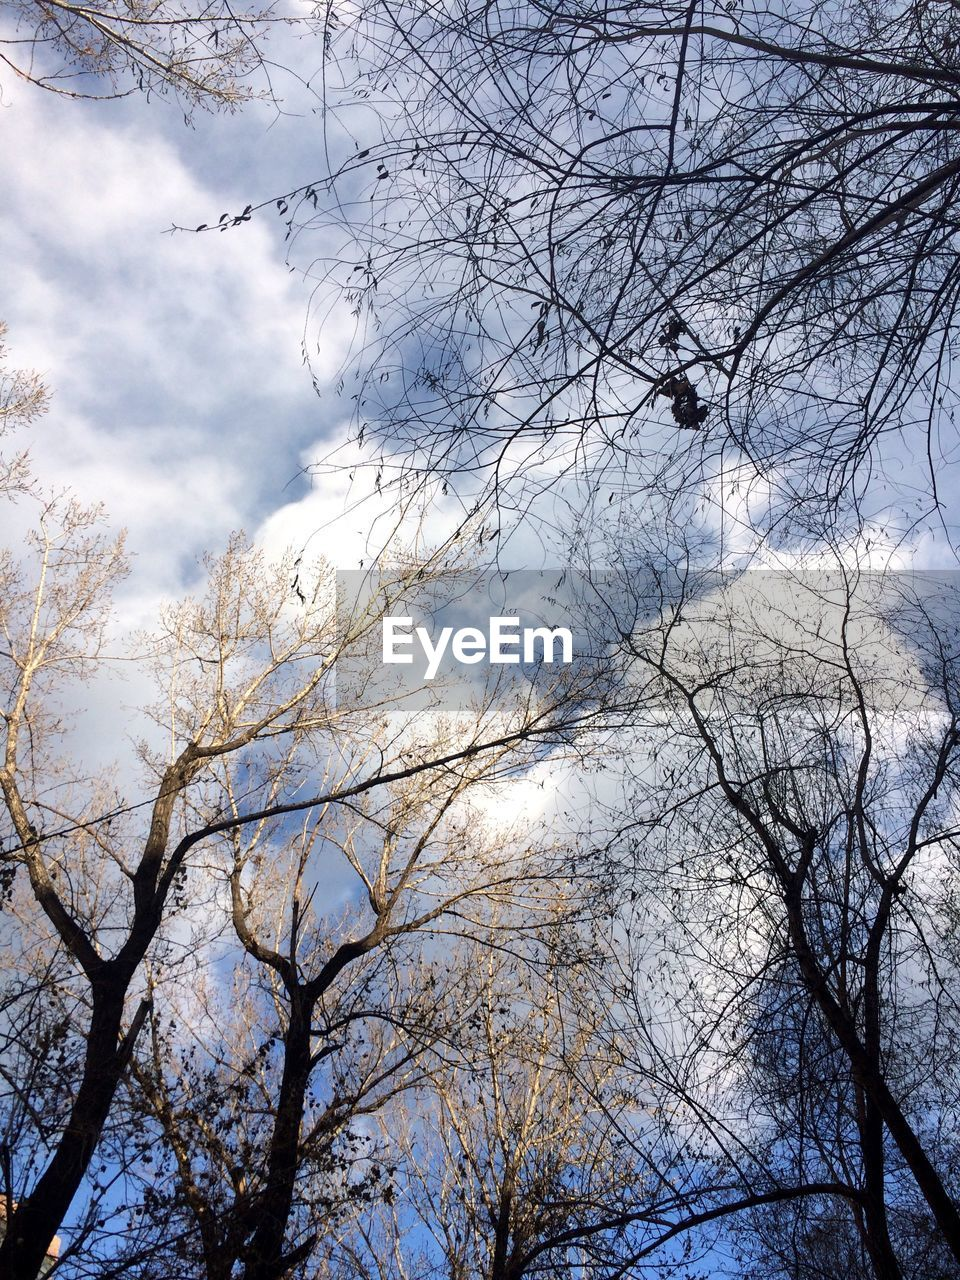 tree, low angle view, branch, sky, bare tree, nature, beauty in nature, no people, day, cloud - sky, outdoors, tranquility, forest, backgrounds